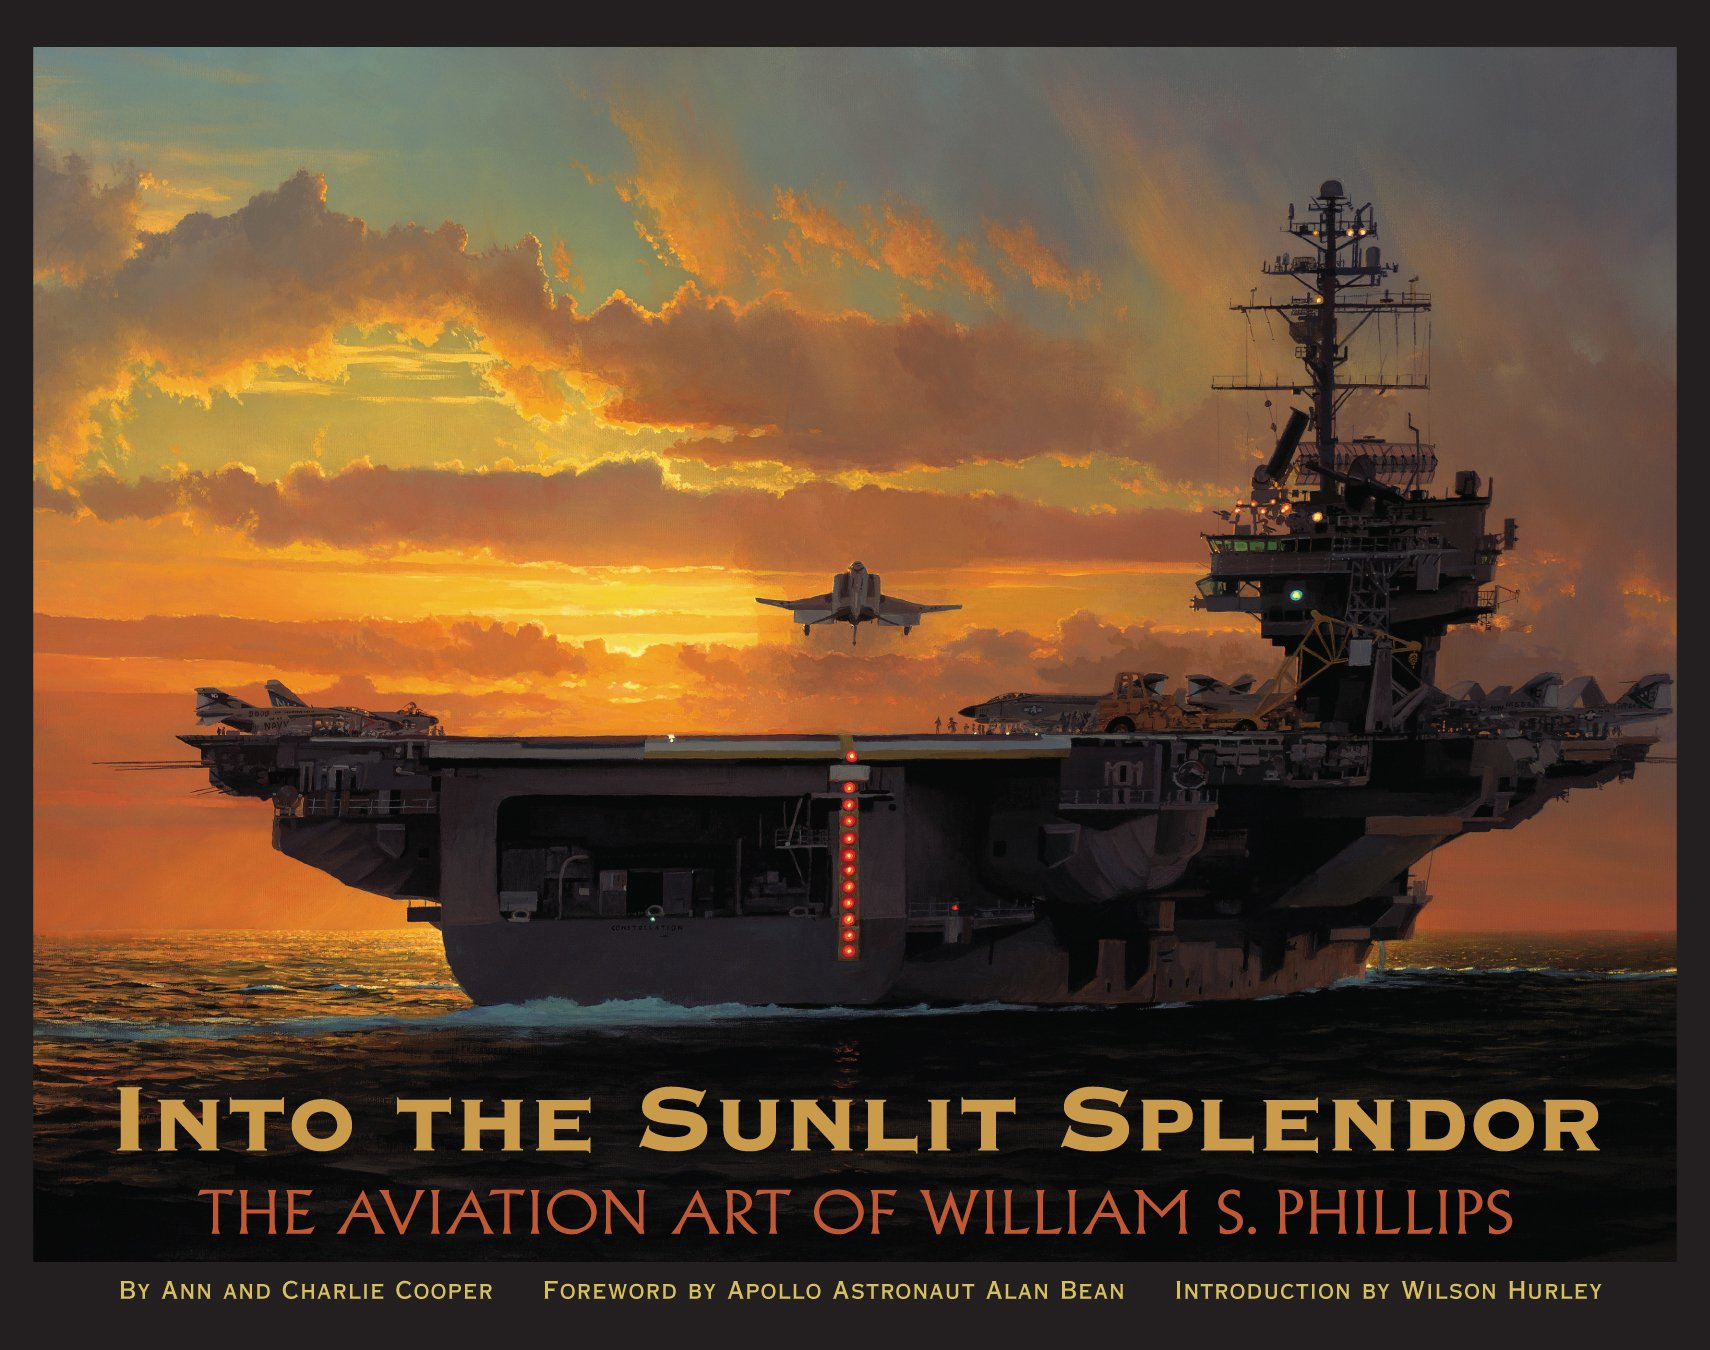 into-the-sunlit-splendor-the-aviation-art-of-william-s-phillips